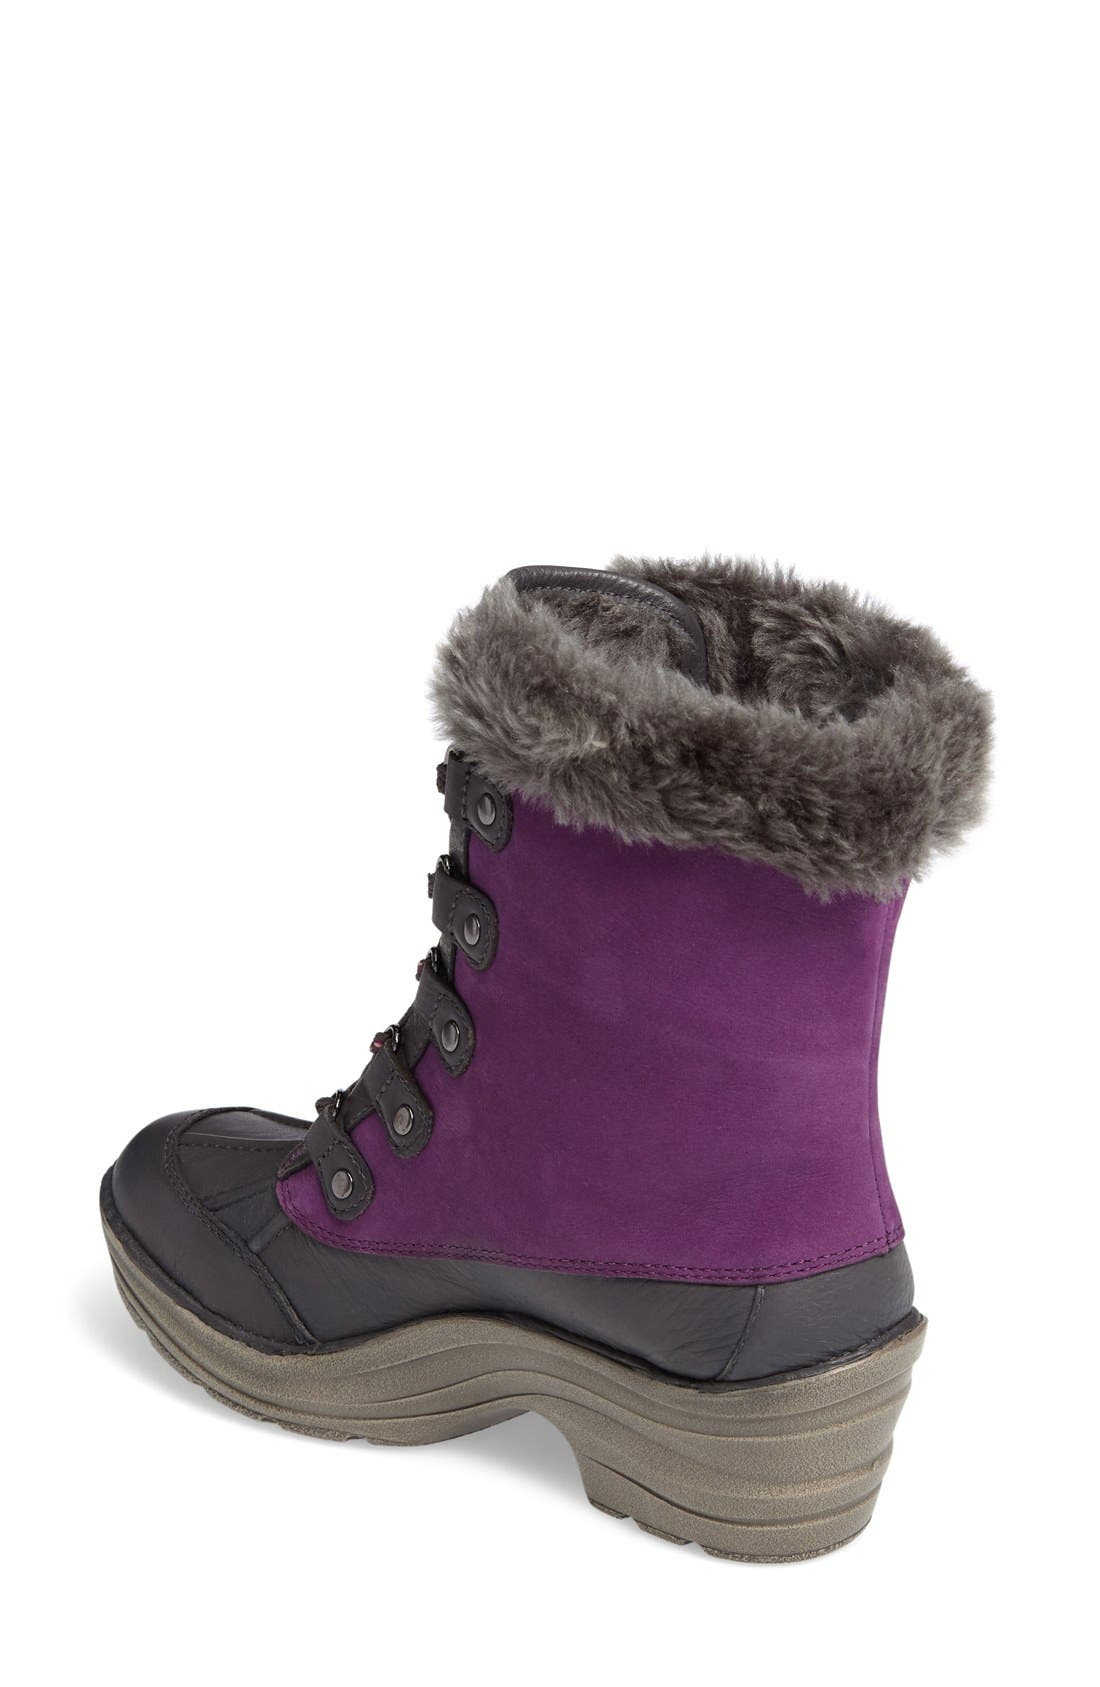 Alternate Image 2  - bionica Rosemound Waterproof Boot (Women)